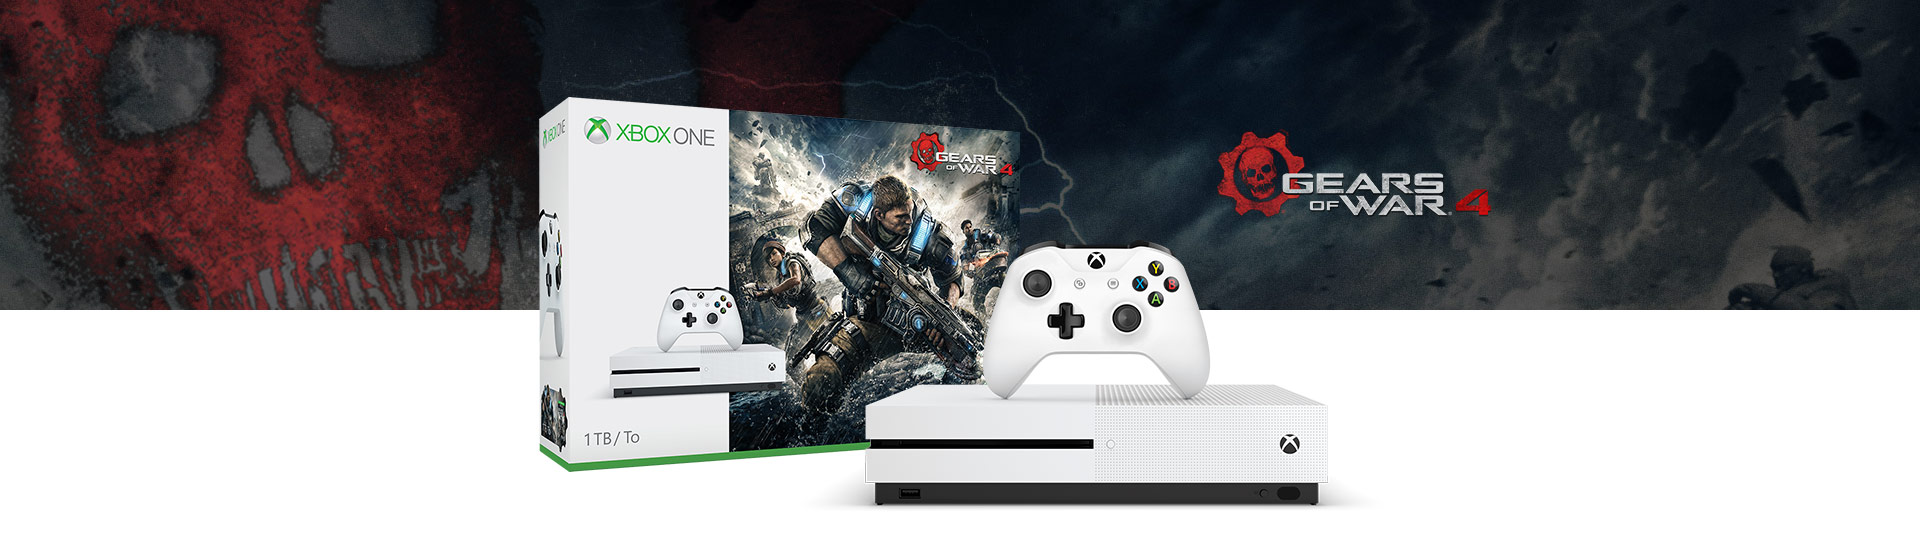 Xbox One S Gears of War 1TB Bundle